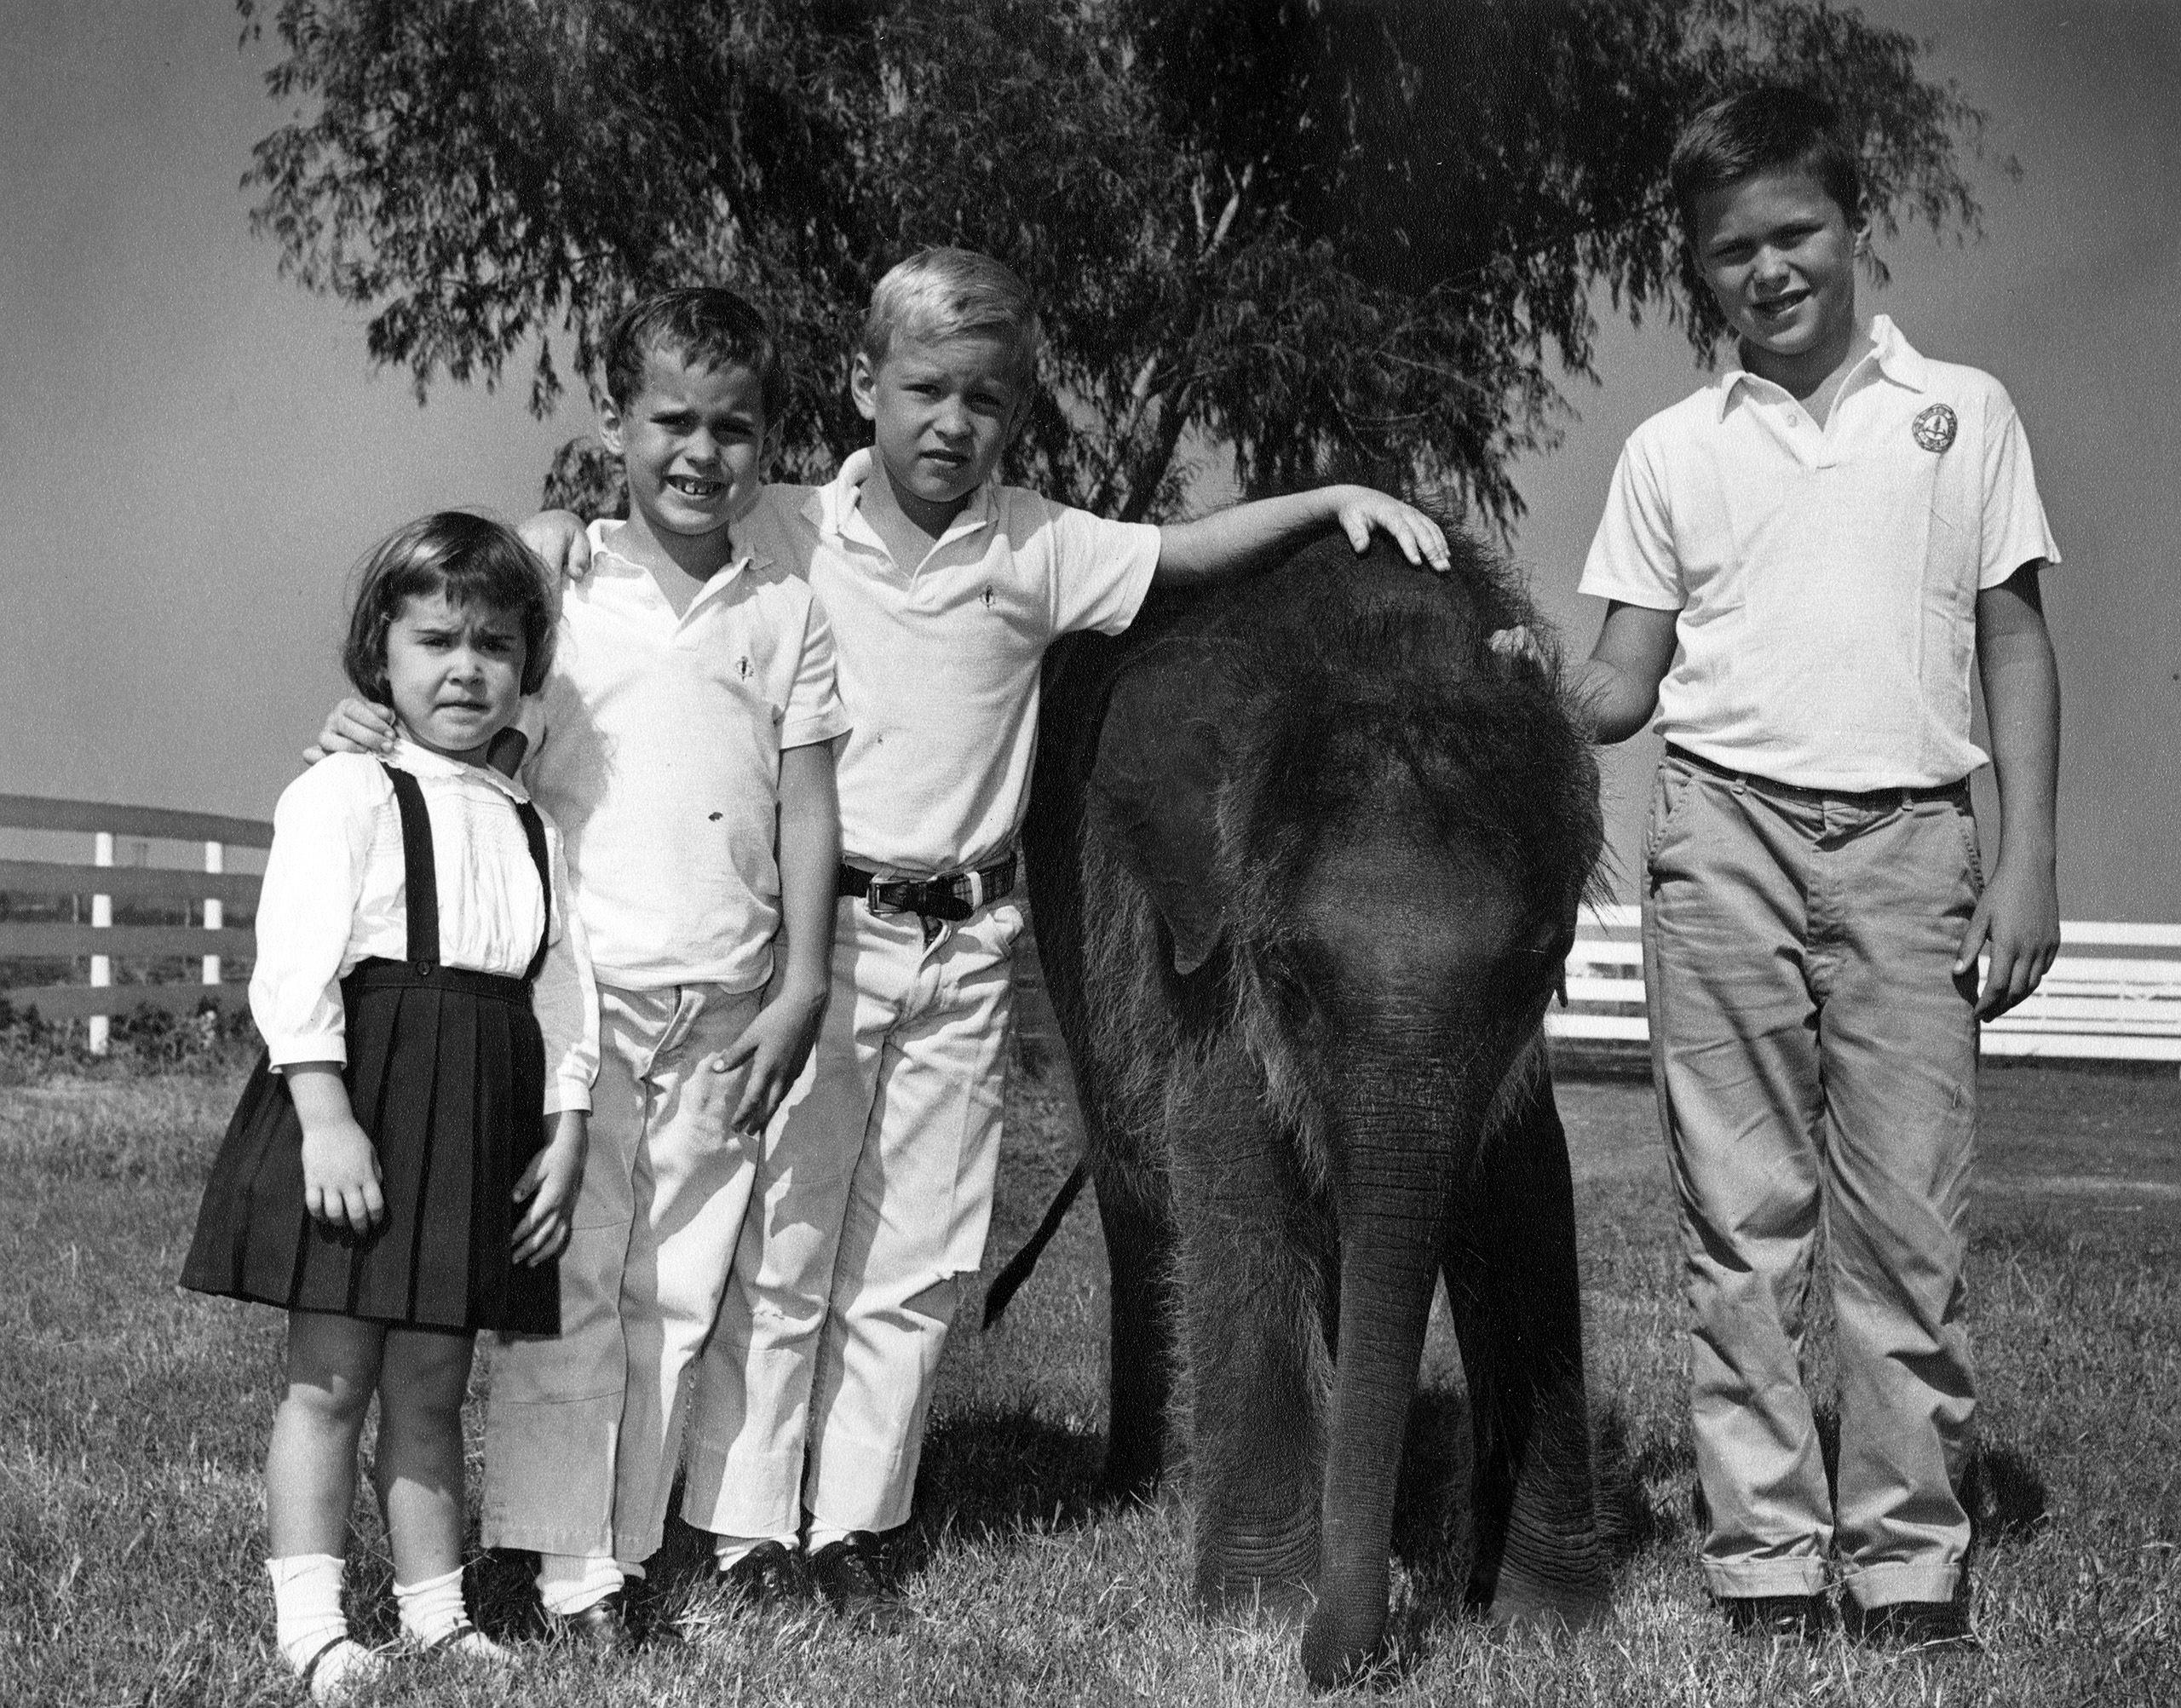 From left to right: Doro, Marvin, Neil, and Jeb Bush, fall 1963.